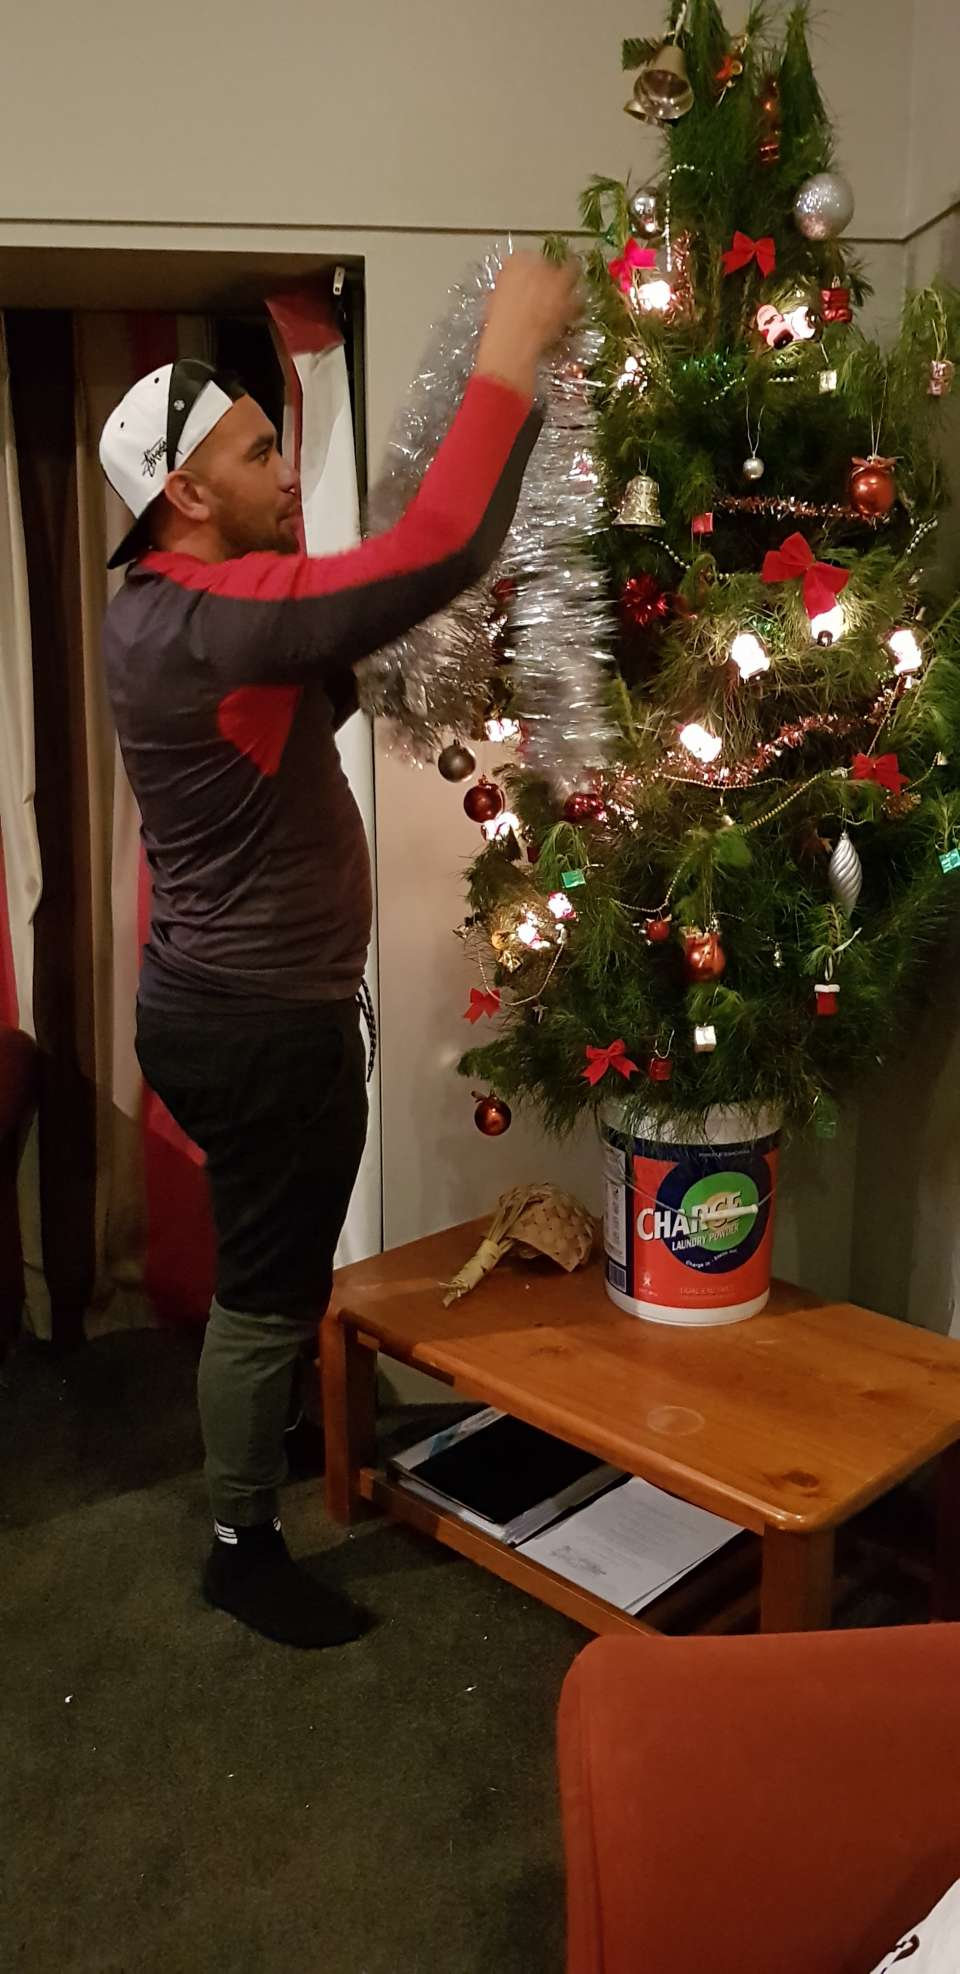 Its starting to feel like Xmas Busy night at the Whare to-night